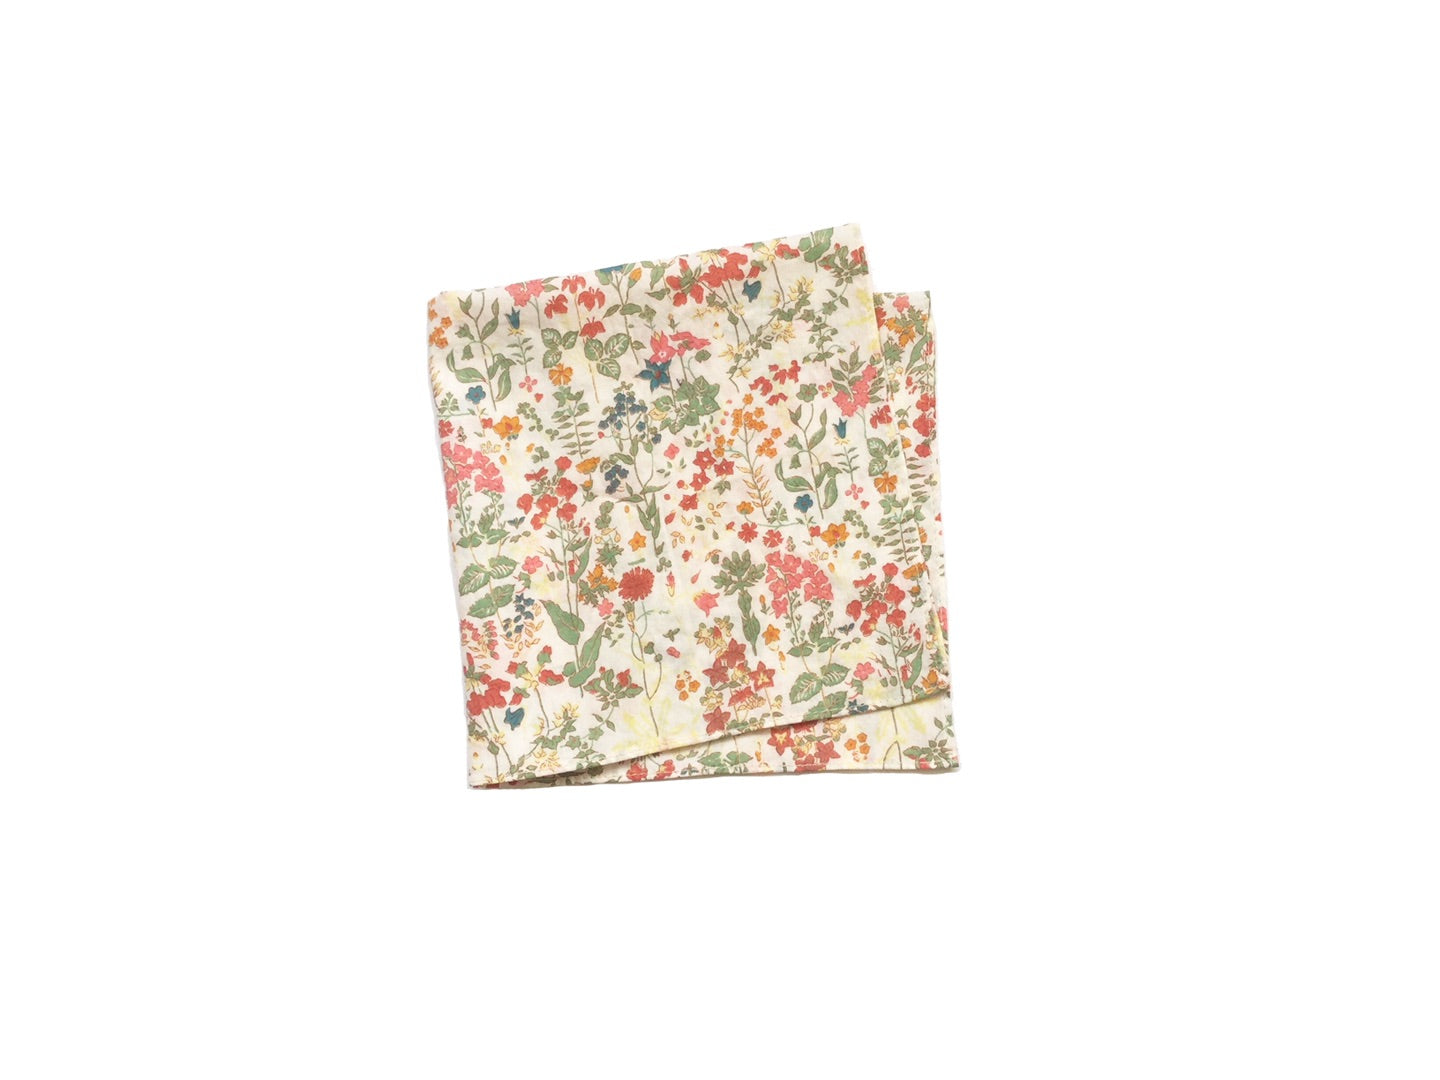 POCKET SQUARE, faded liberty cotton